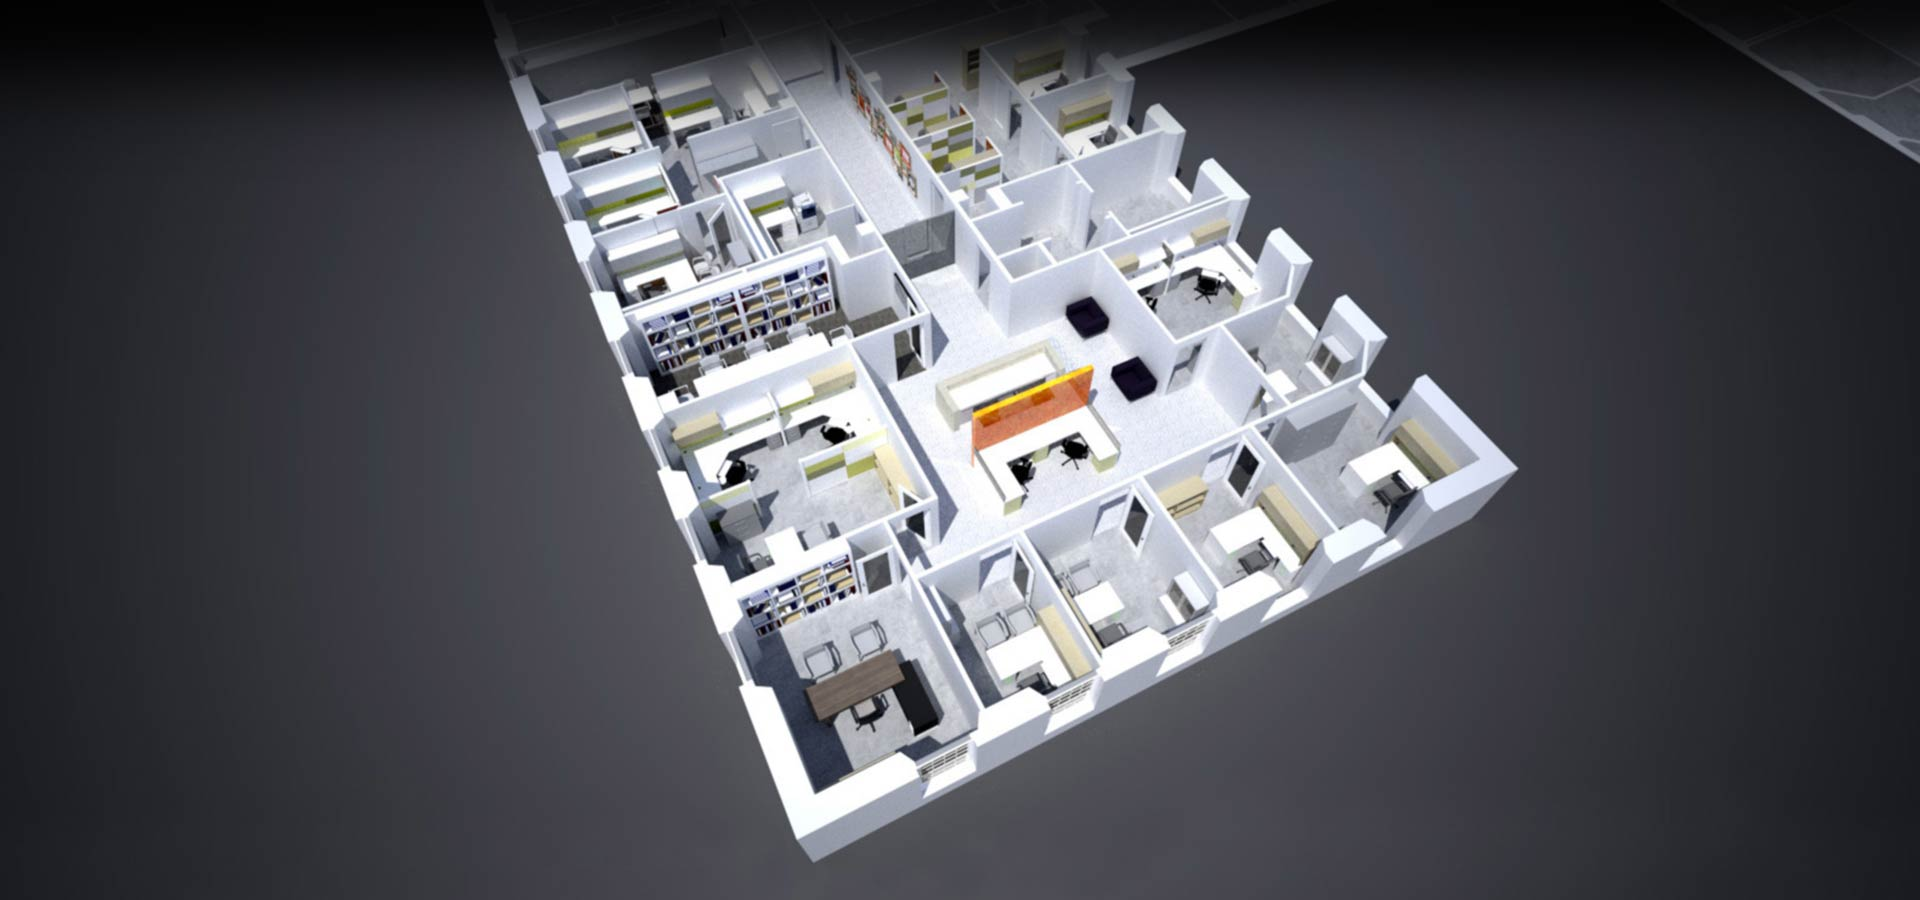 architectural features for el museo overview and architecture for nyc department of buildings zones and code compliant architecture